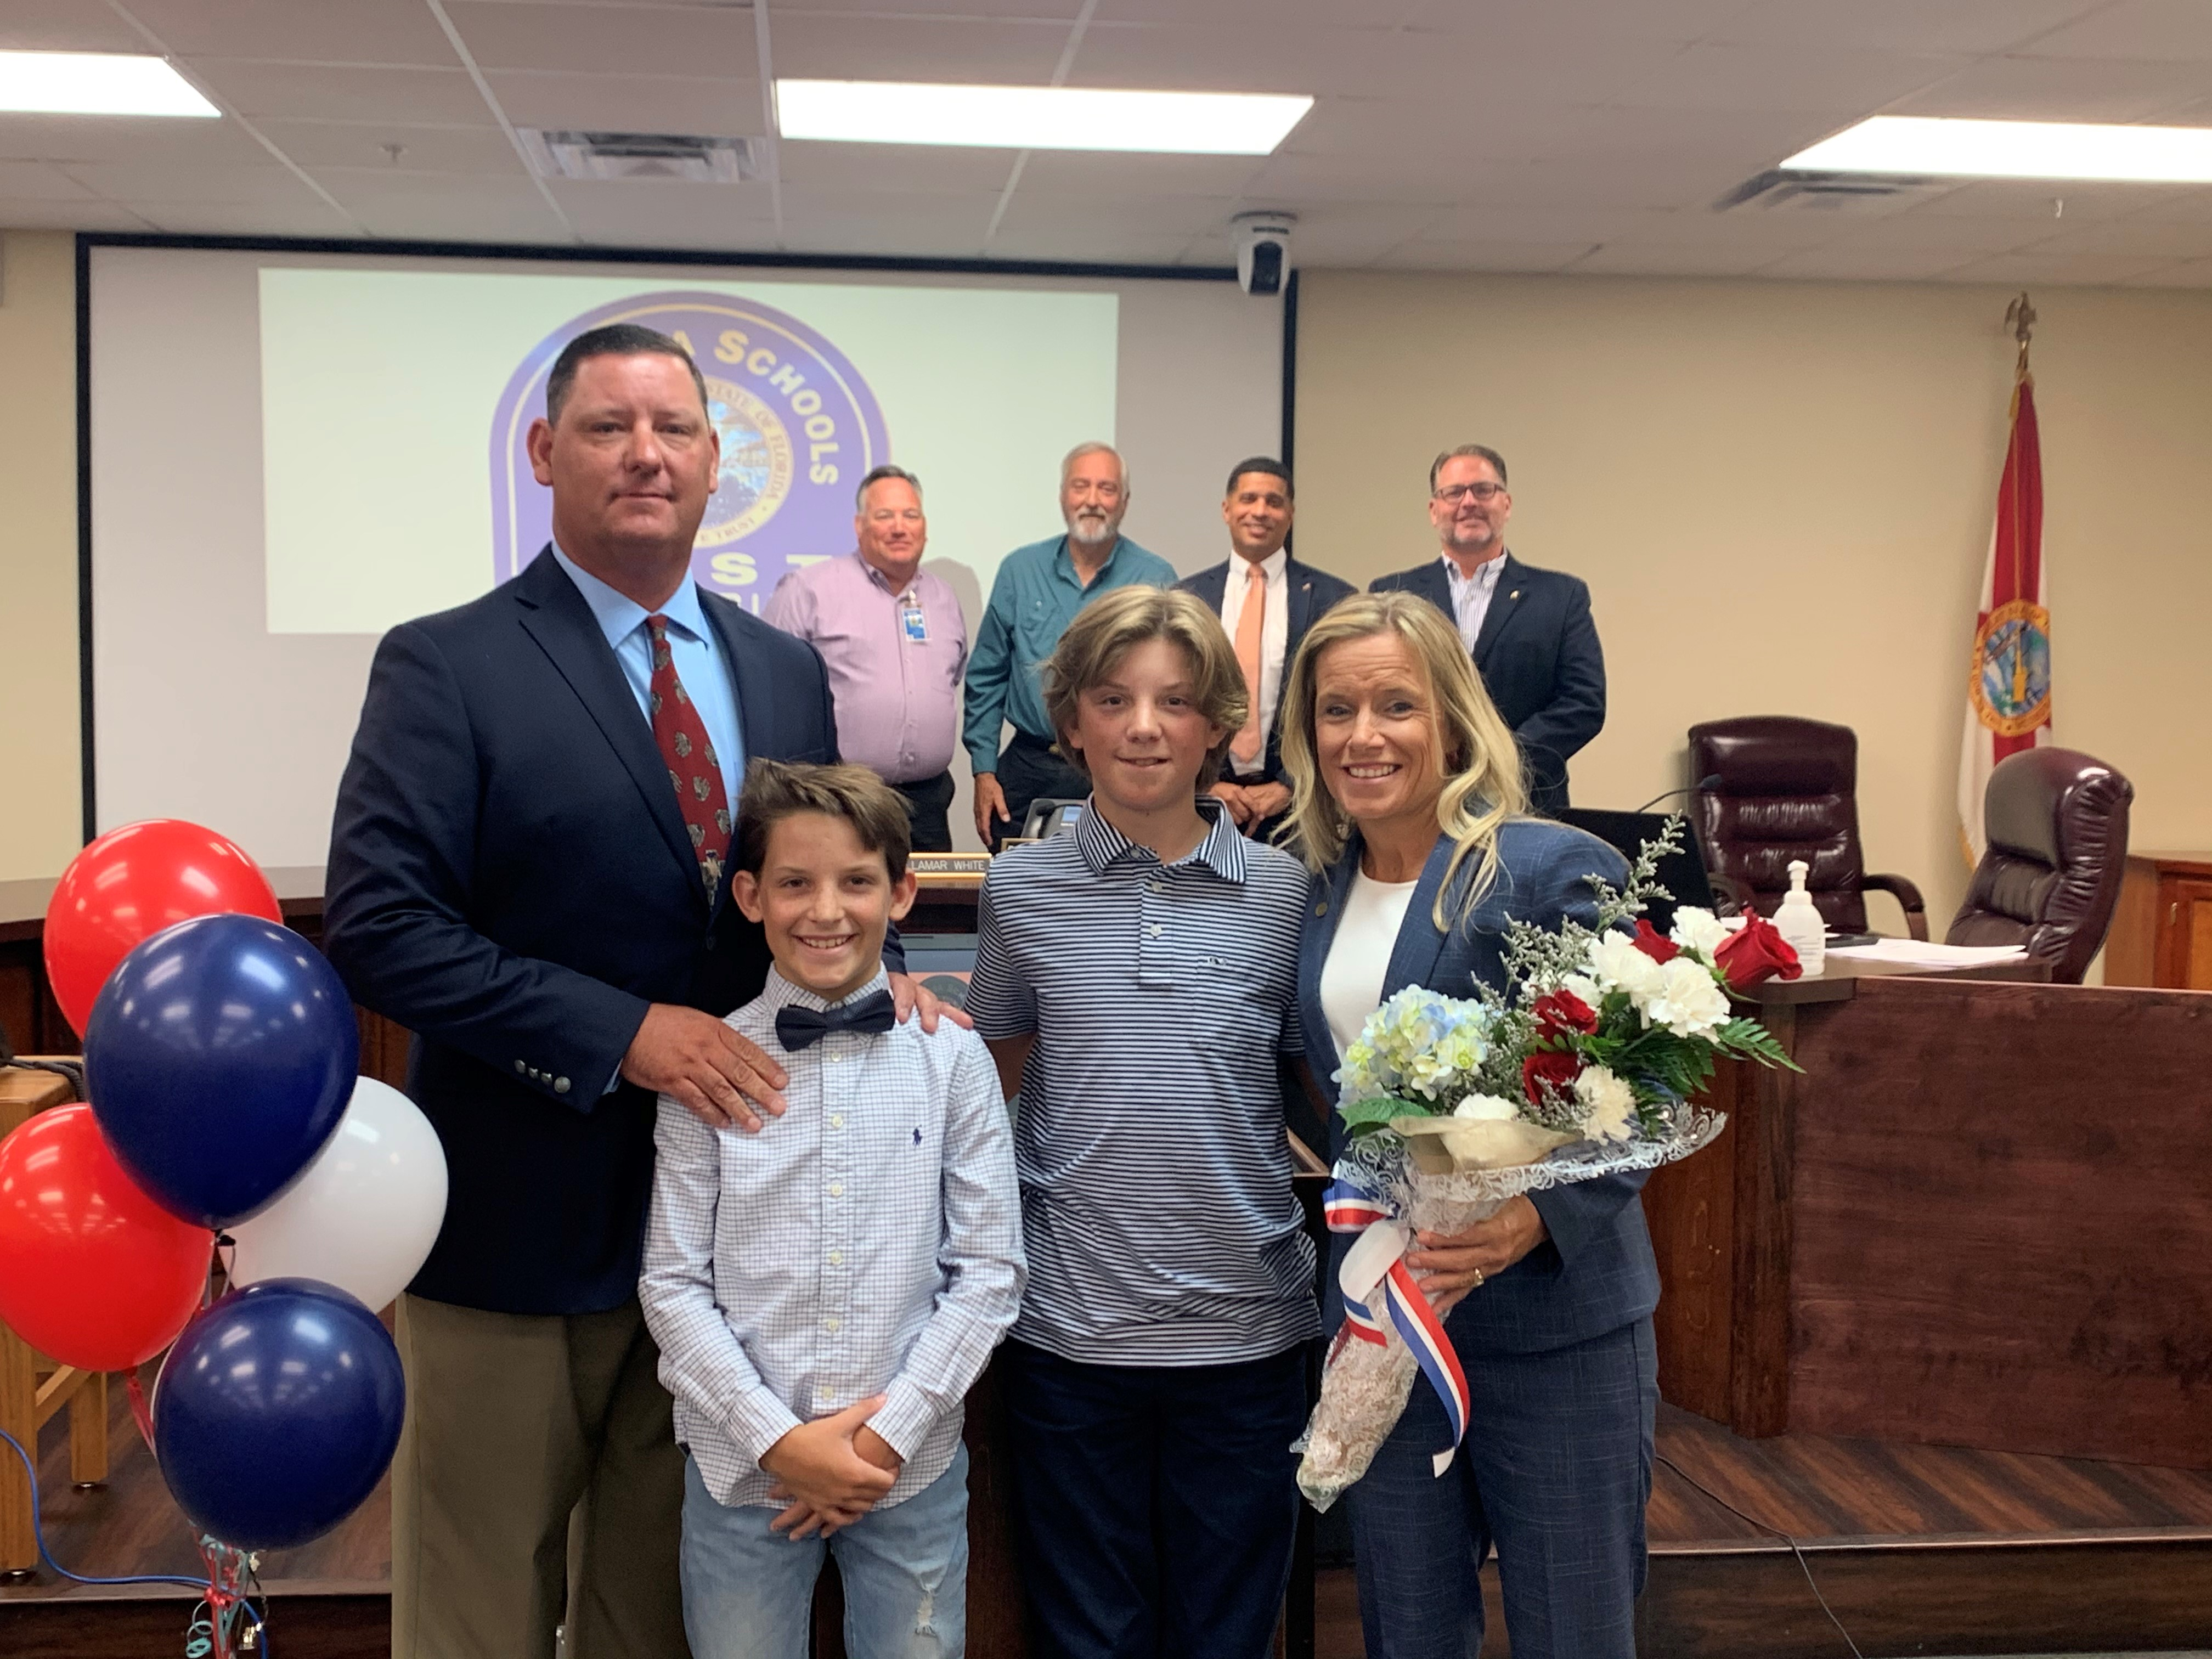 Holly McDaniel Named FWBHS Athletic Director